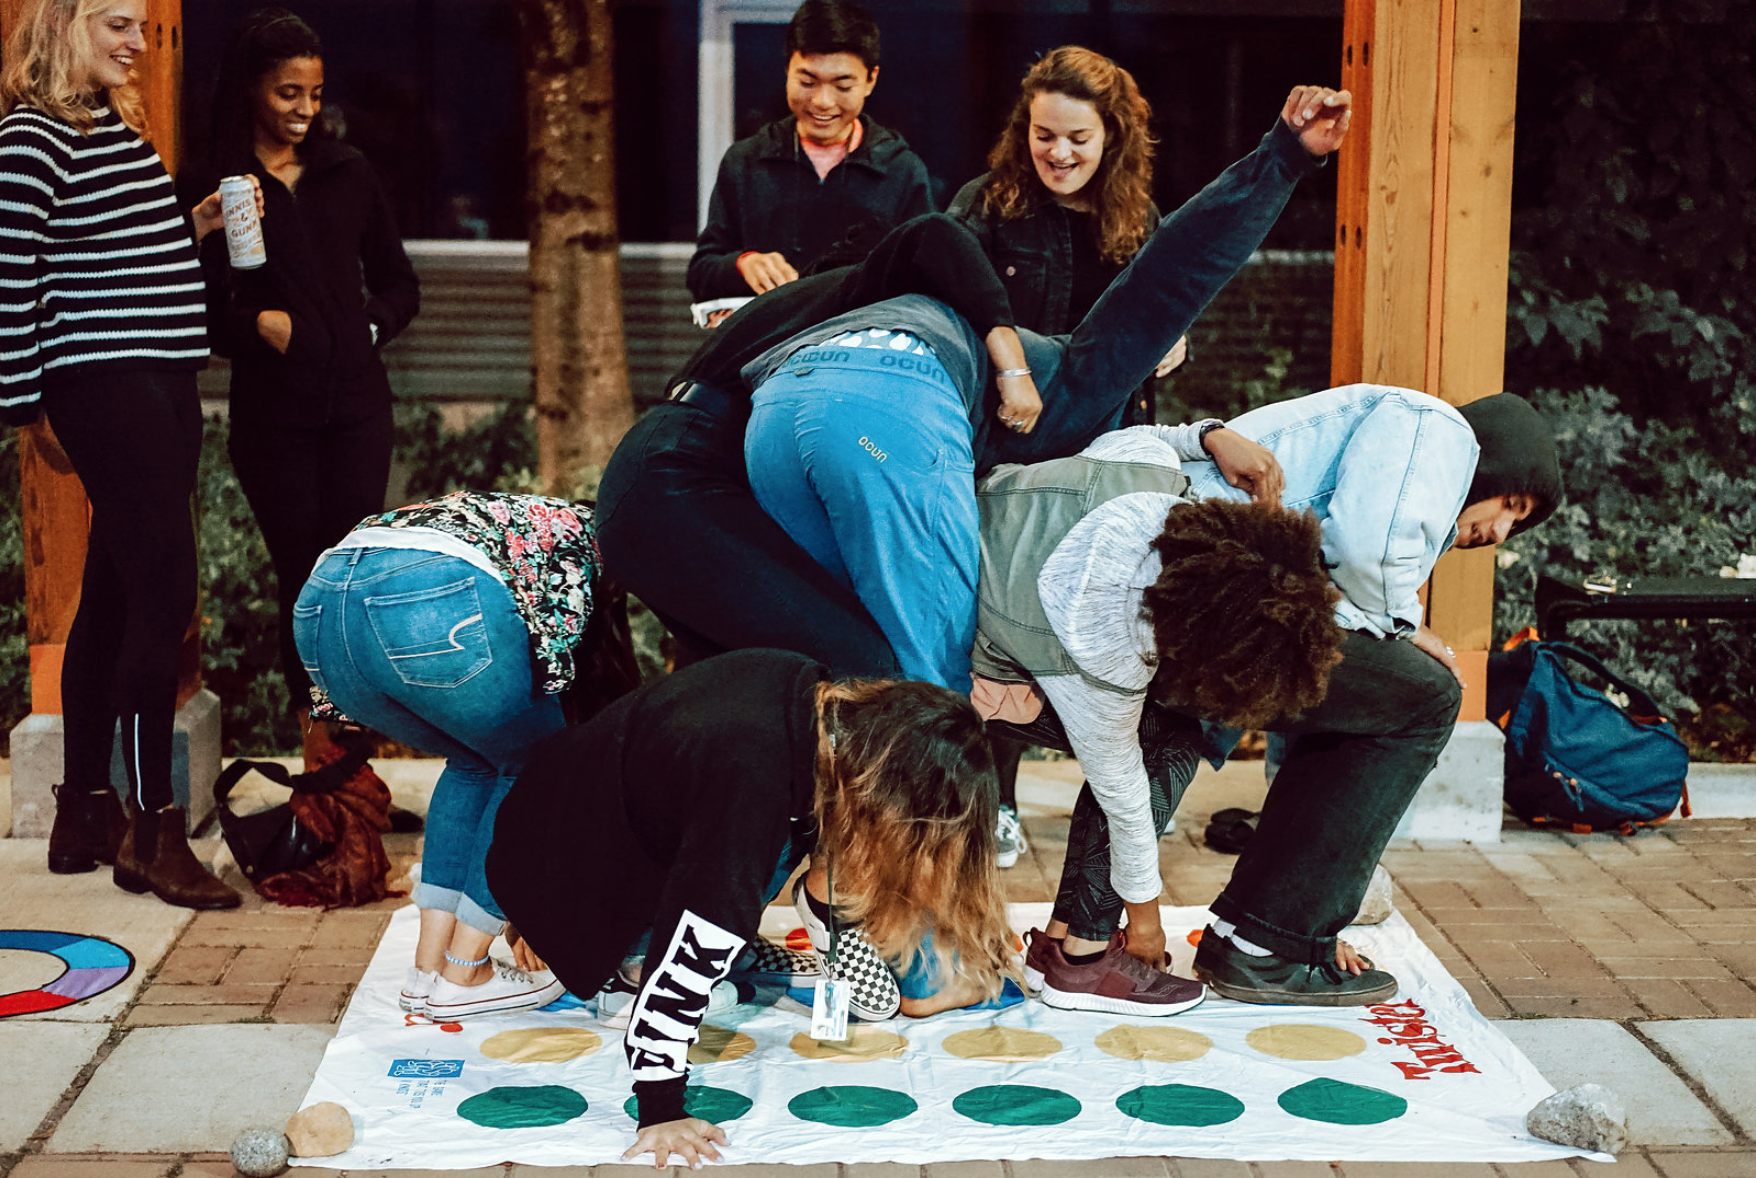 Image of a group of students outside of the library building playing the game Twister and having fun.